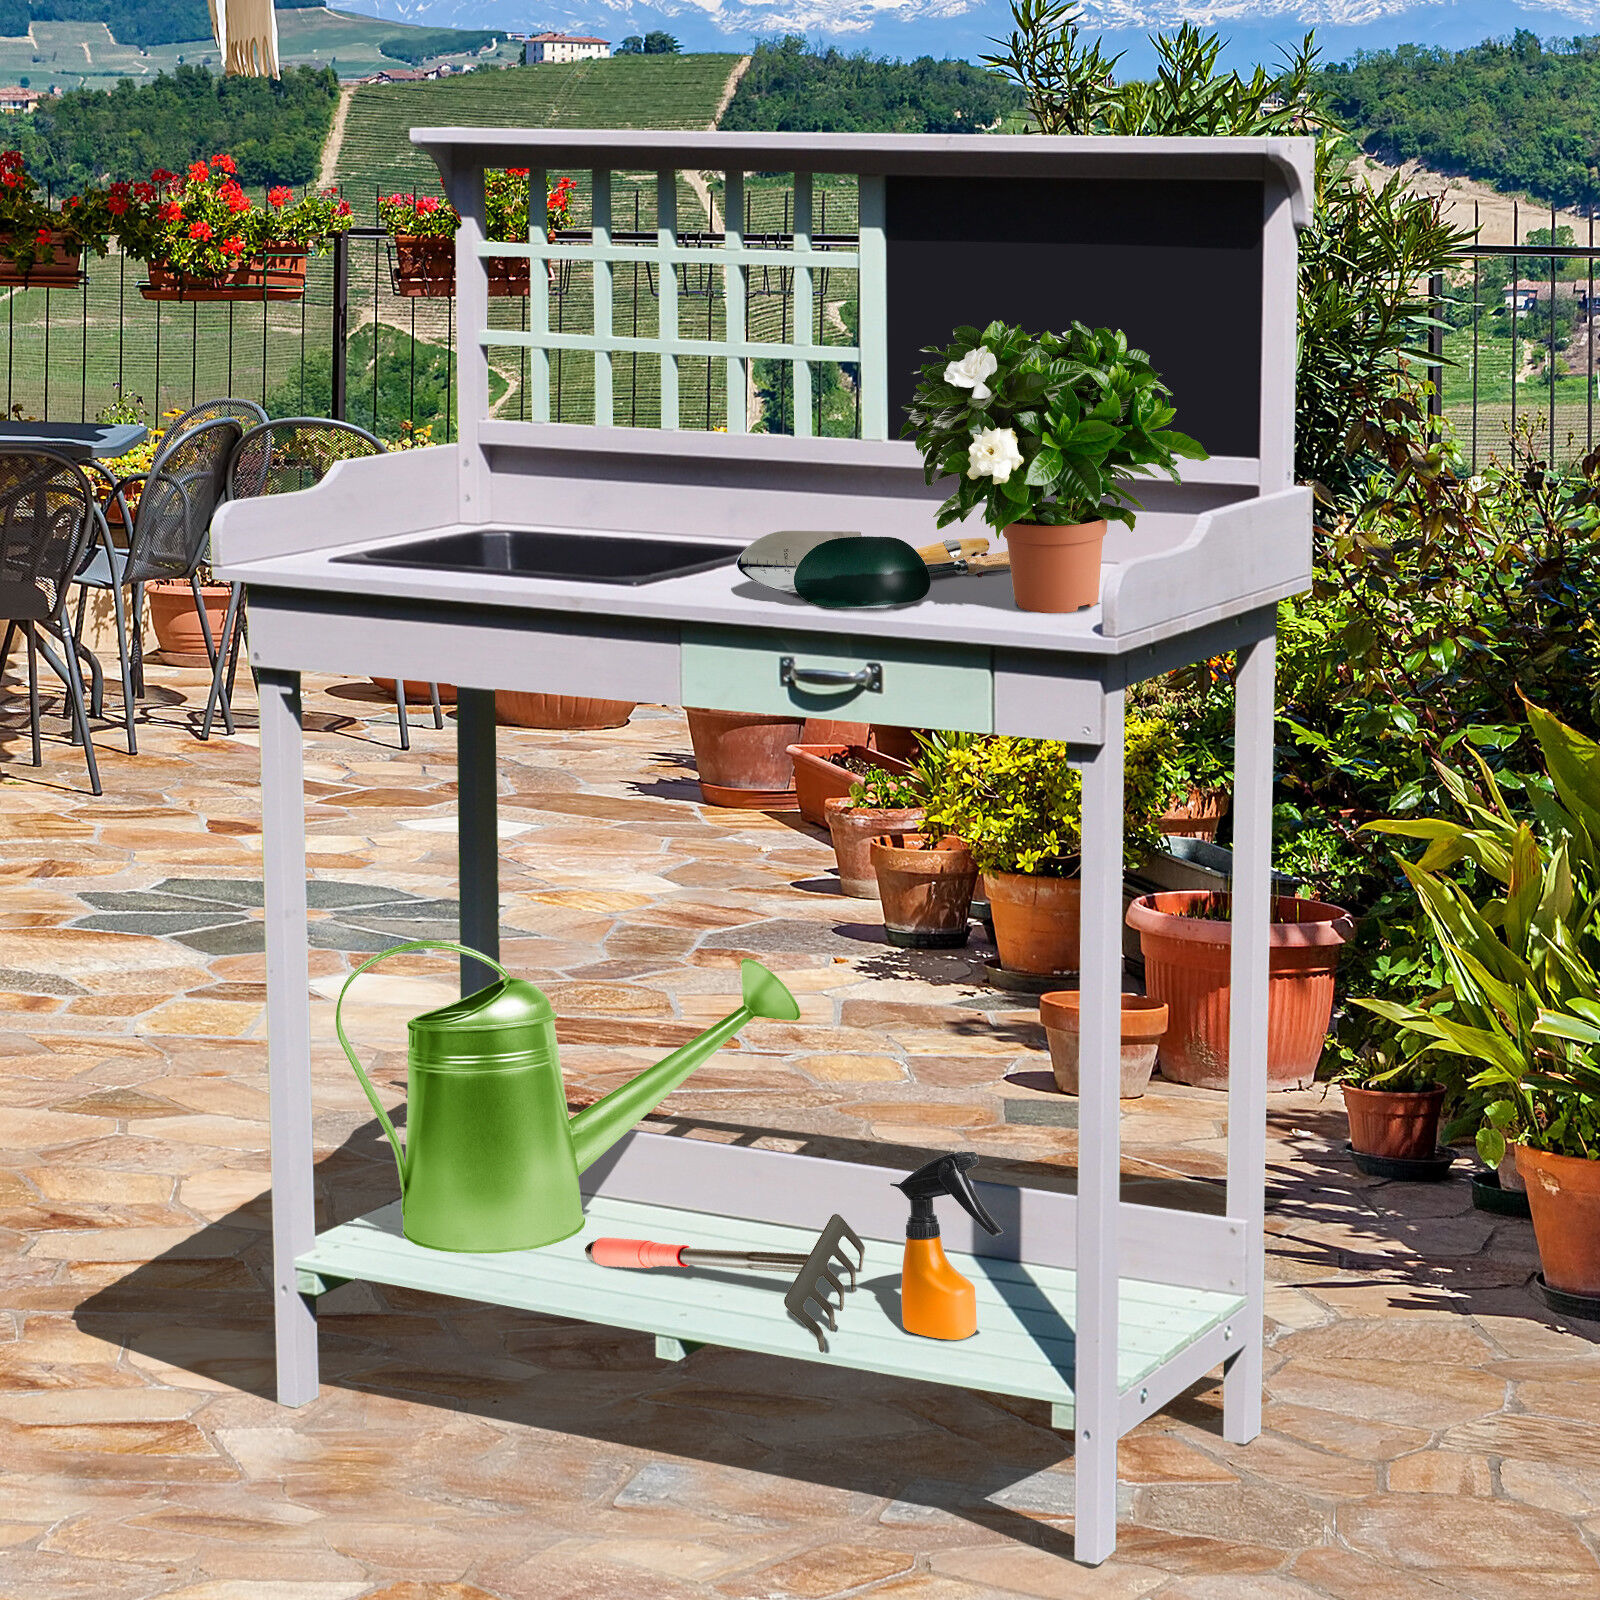 Painted Wooden Garden Plant Table Potting Bench Workstation with Storage